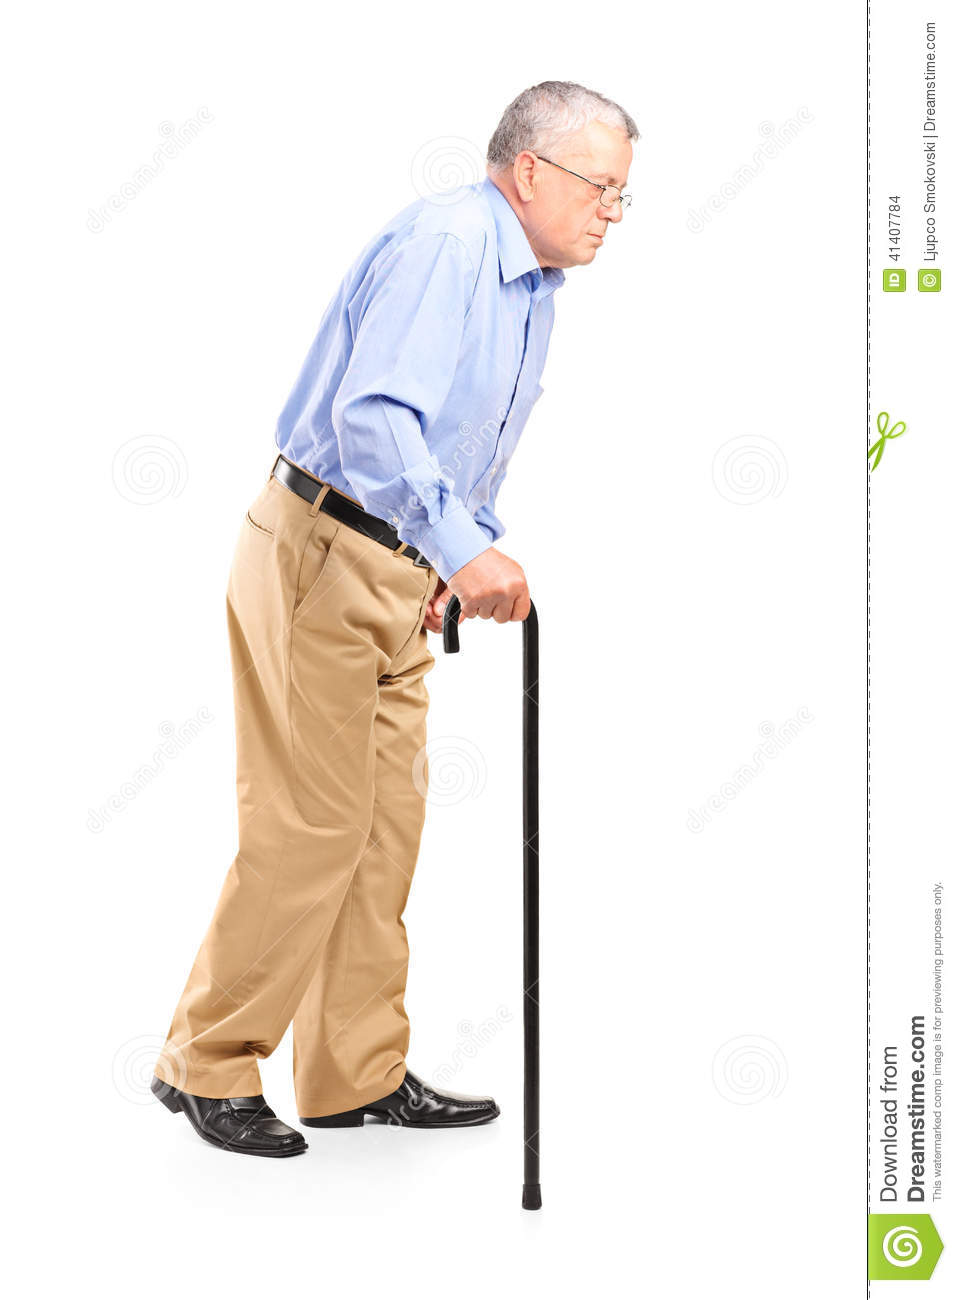 Old Man Walking With Cane Stock Photo - Image: 41407784